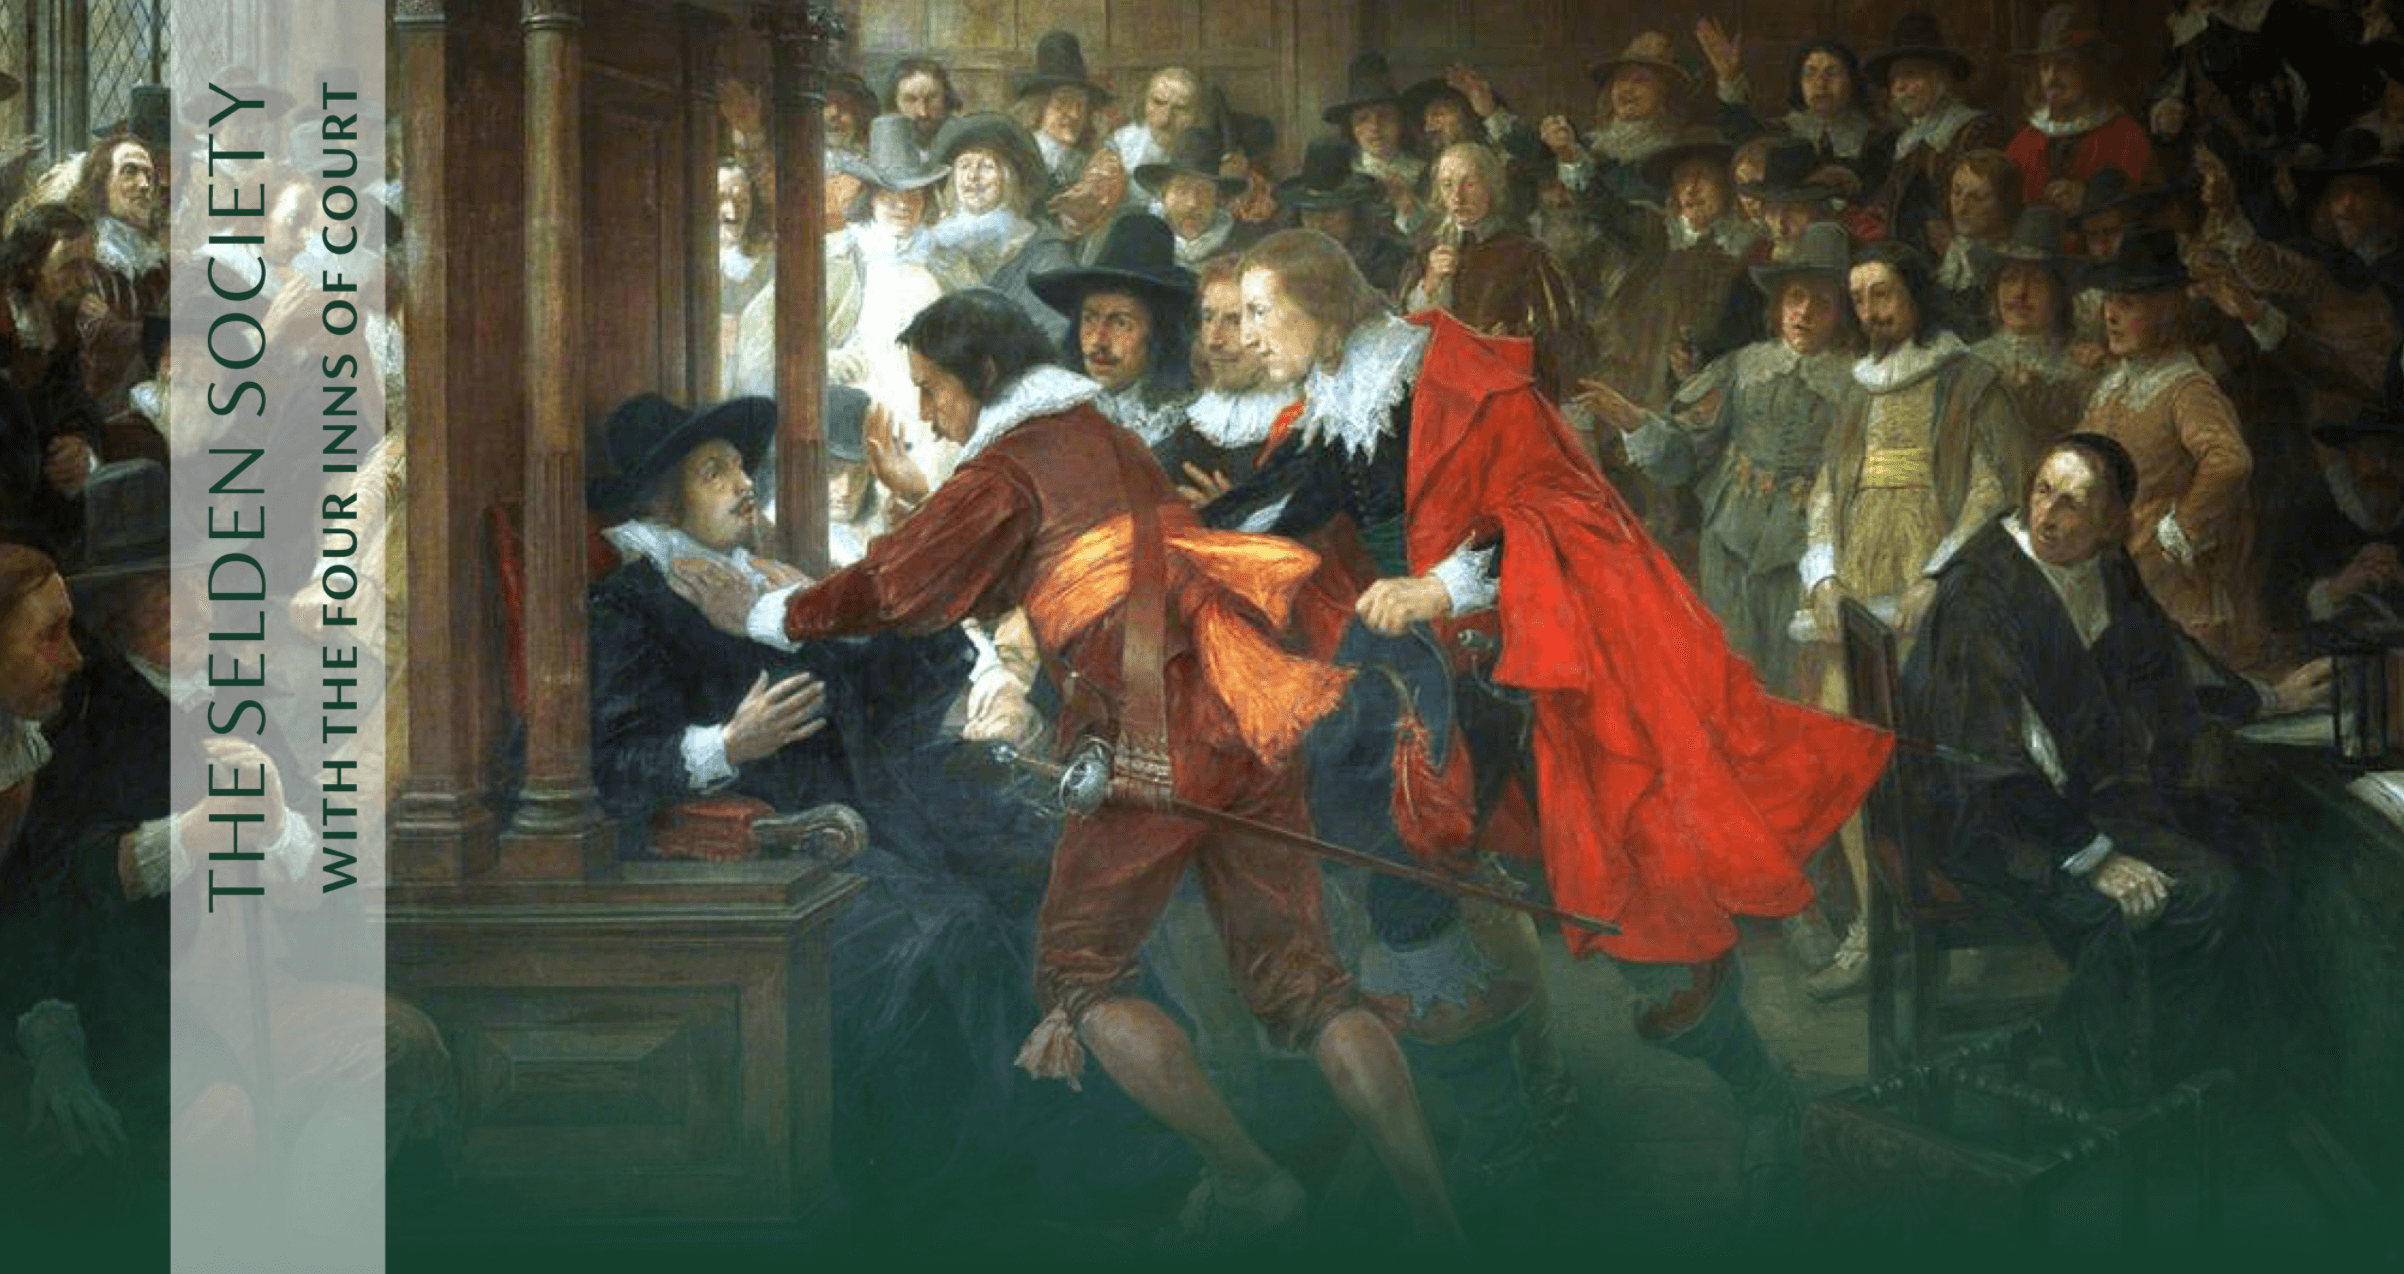 John Selden and Legal History: 'Liberty above all Things'